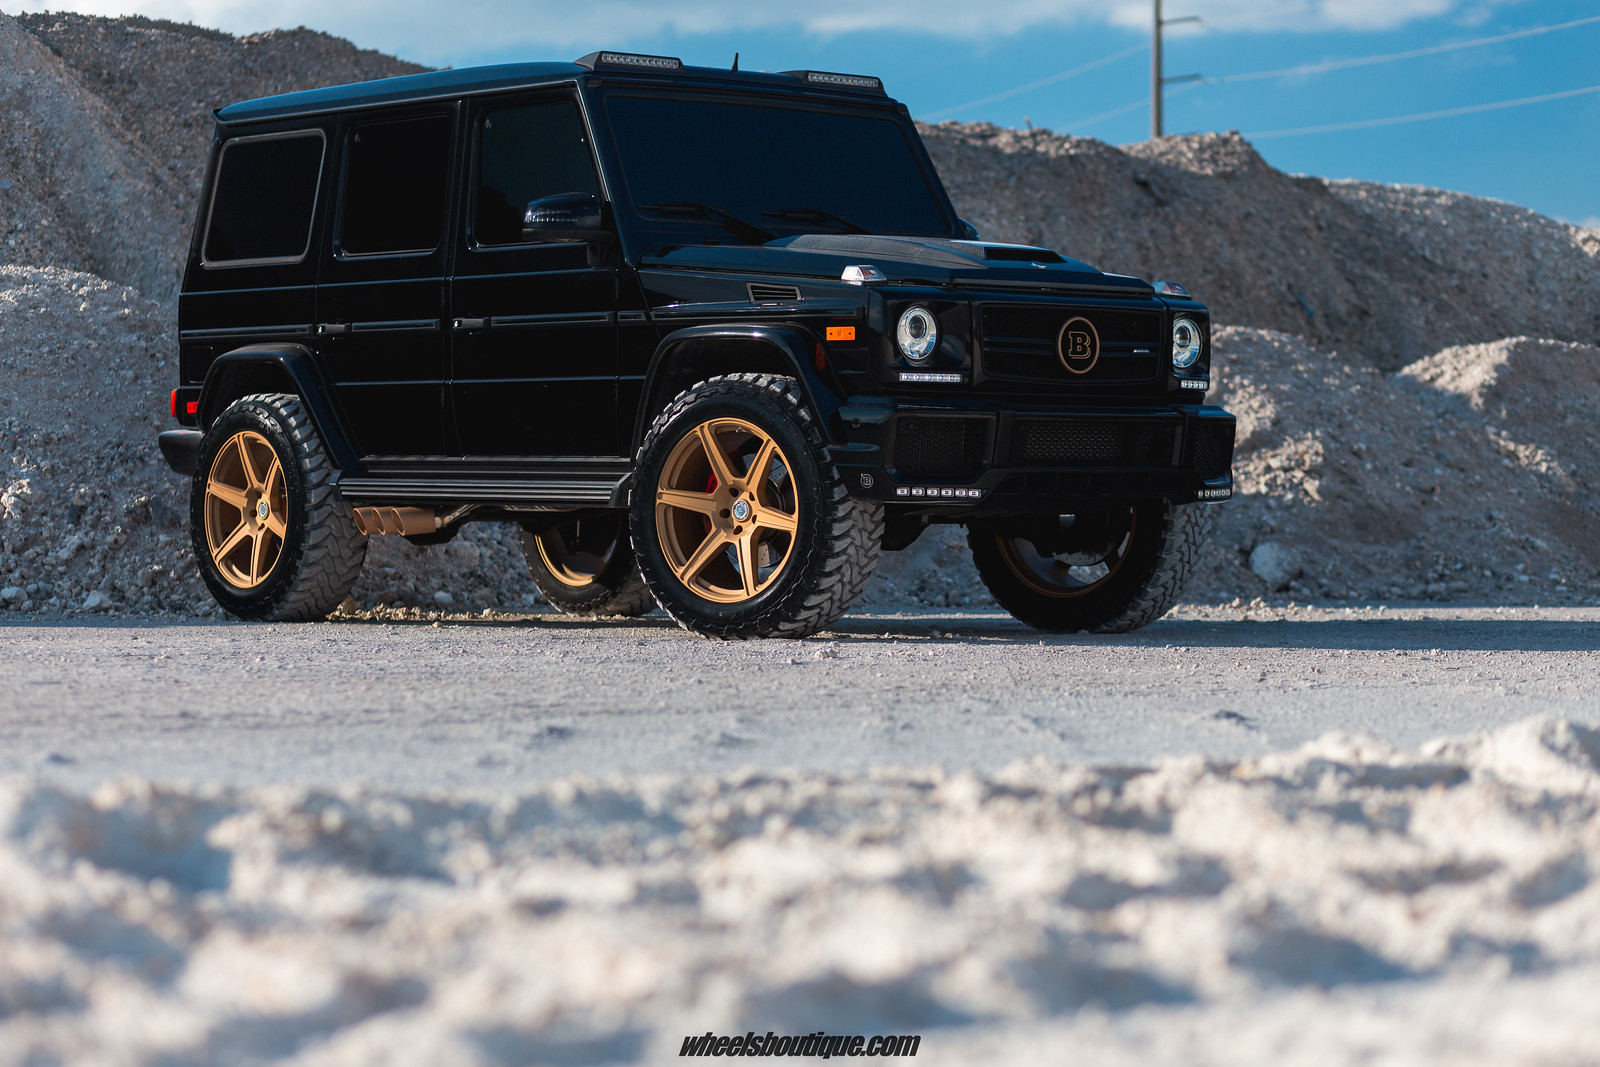 The Brabus Brawler - Another Lifted Mercedes G63 by TeamWB